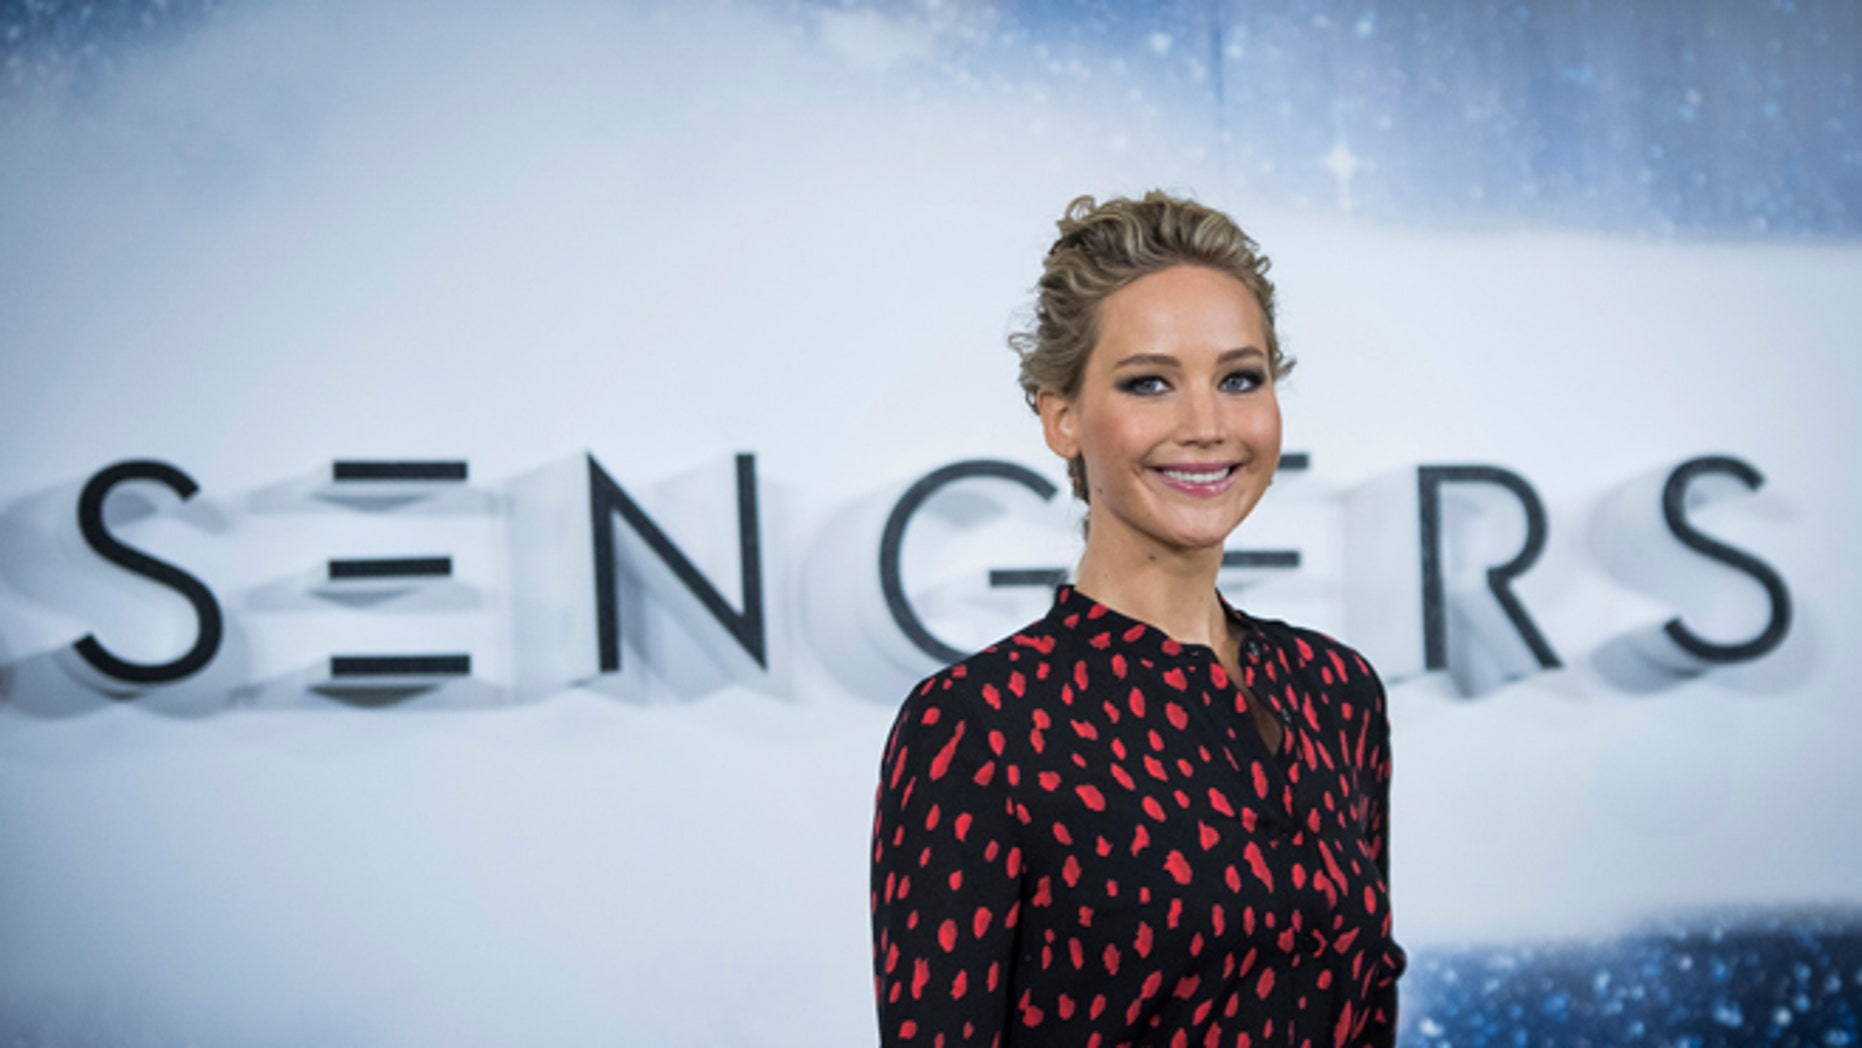 Jennifer Lawrence spread some holiday cheer at the Norton Children's Hospital.